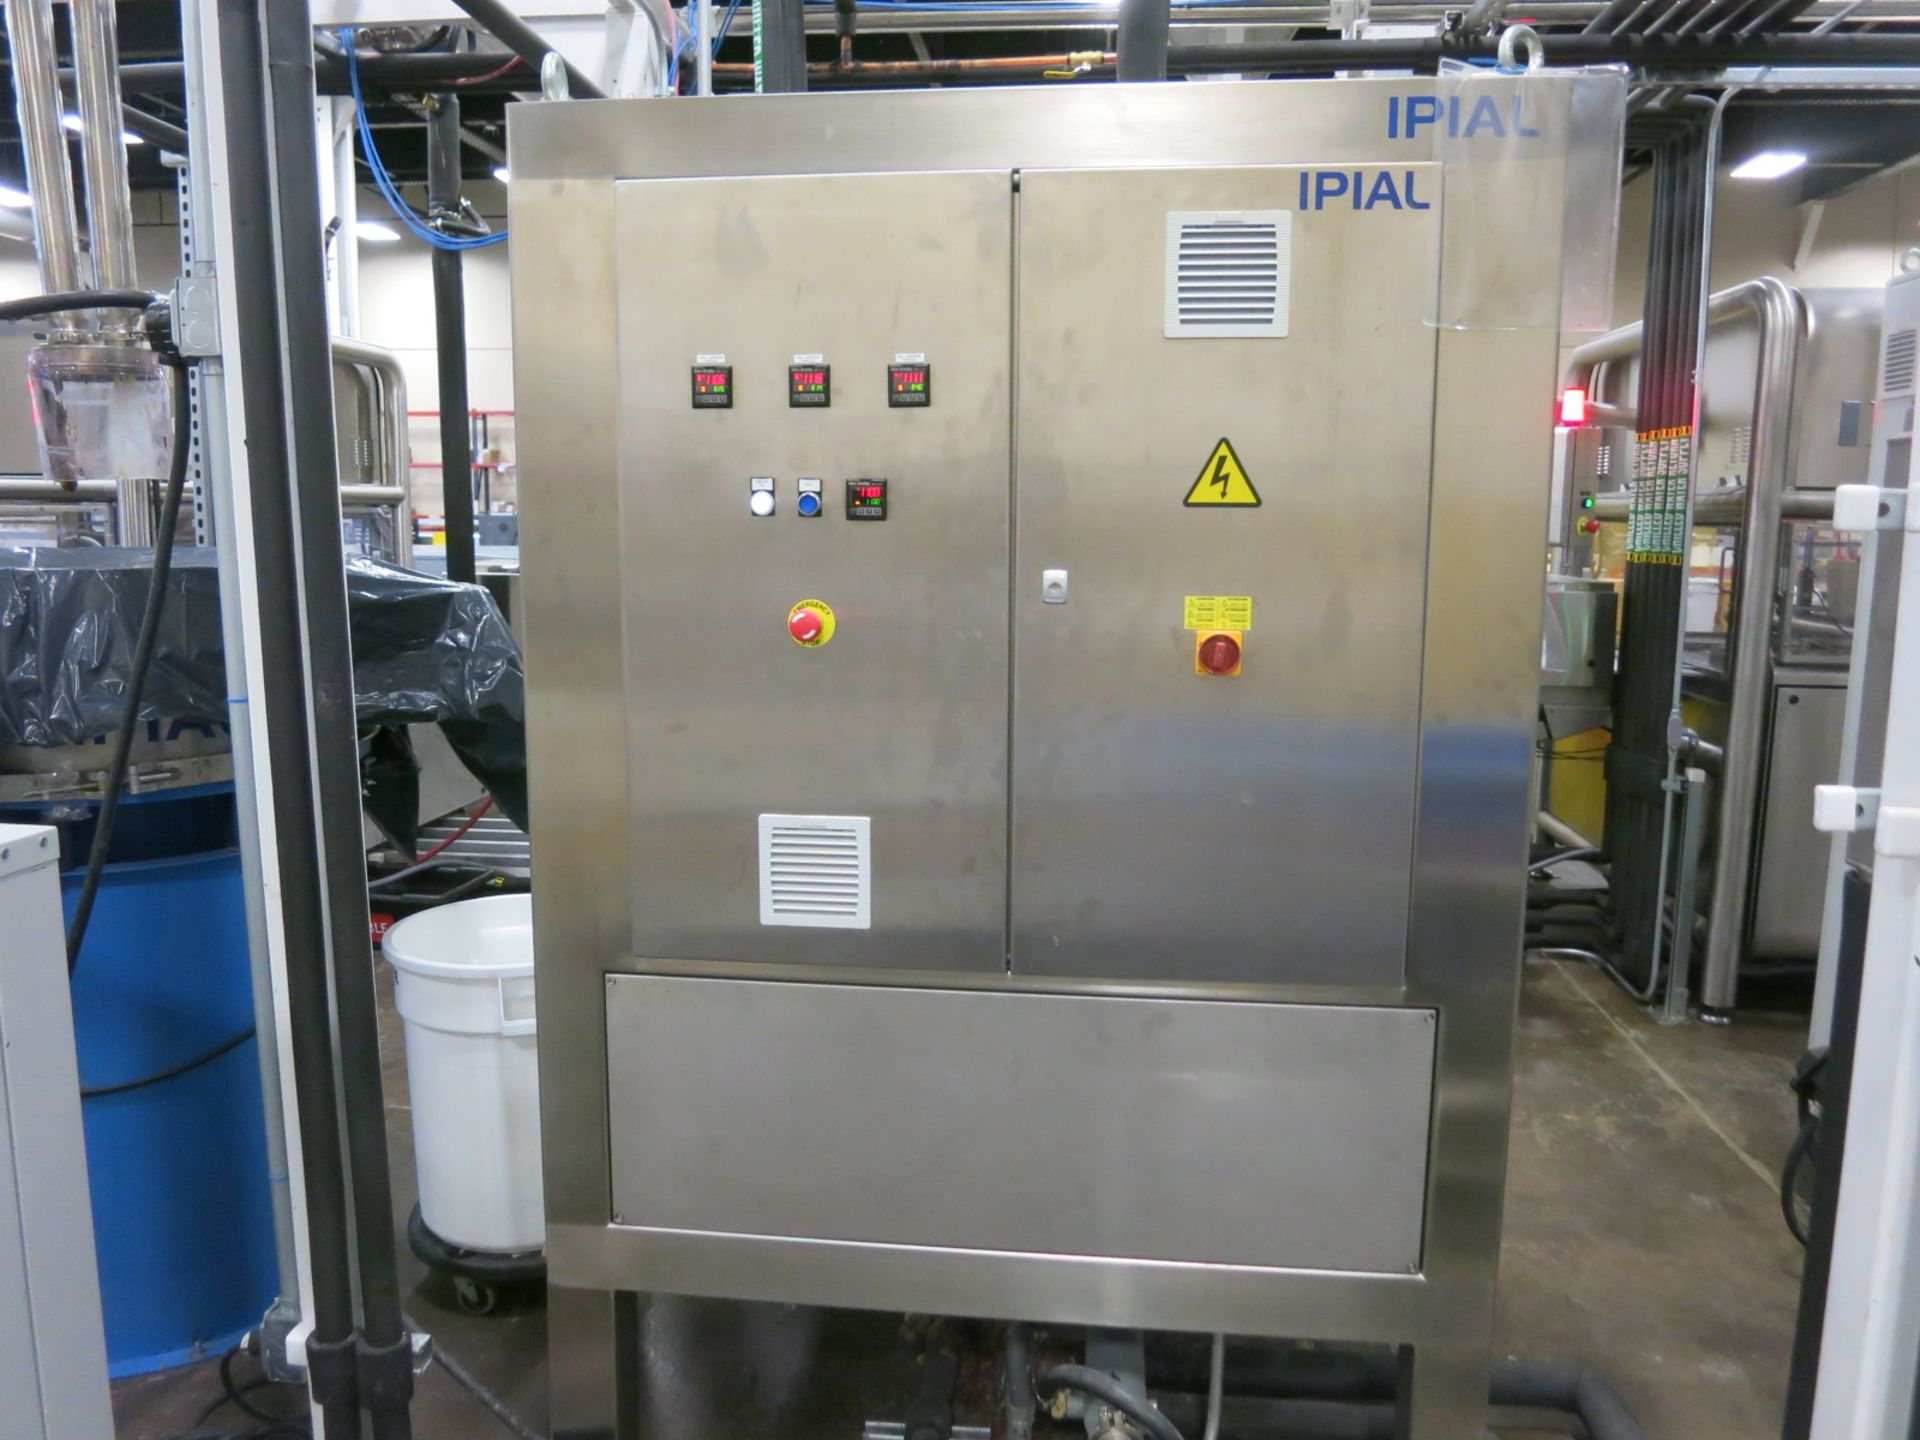 Lot 119A - Ipial Tempering Unit and Chiller - Lot 119 & 120